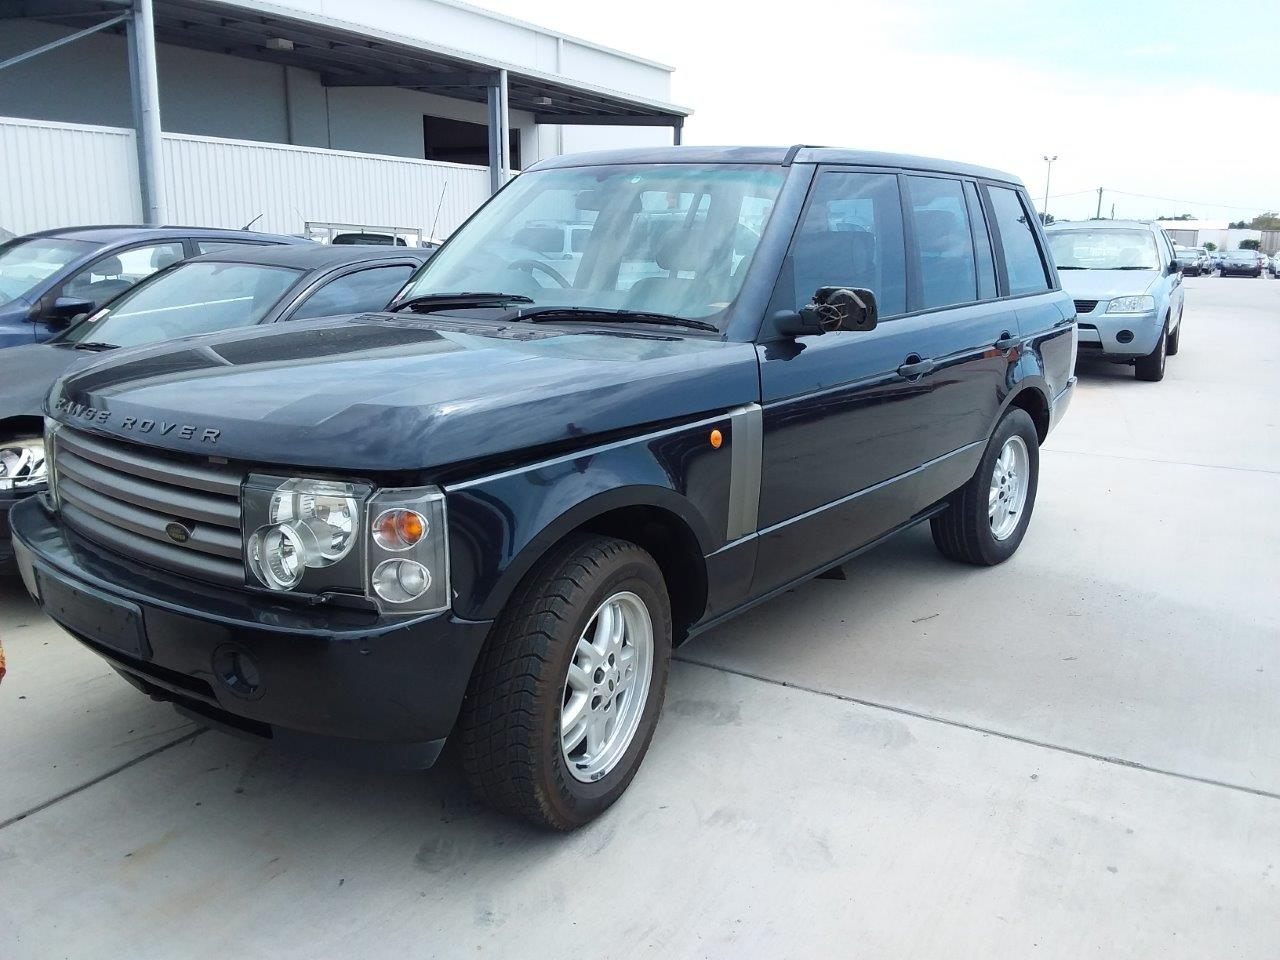 2002 Land Rover Range Rover HSE TD6 Turbo Diesel Automatic Wagon